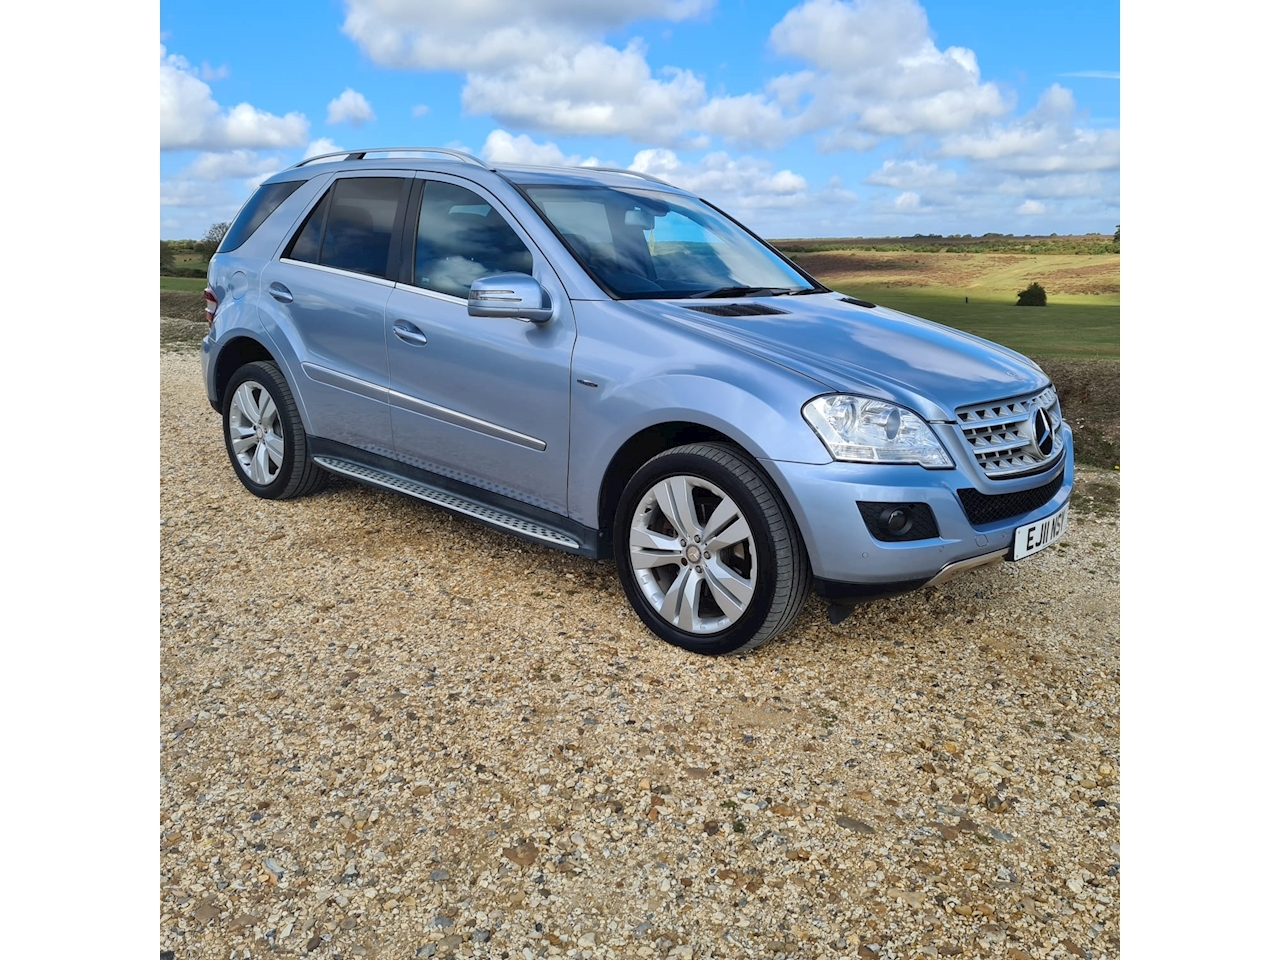 Mercedes-Benz M Class Sport SUV 3.0 Automatic Diesel